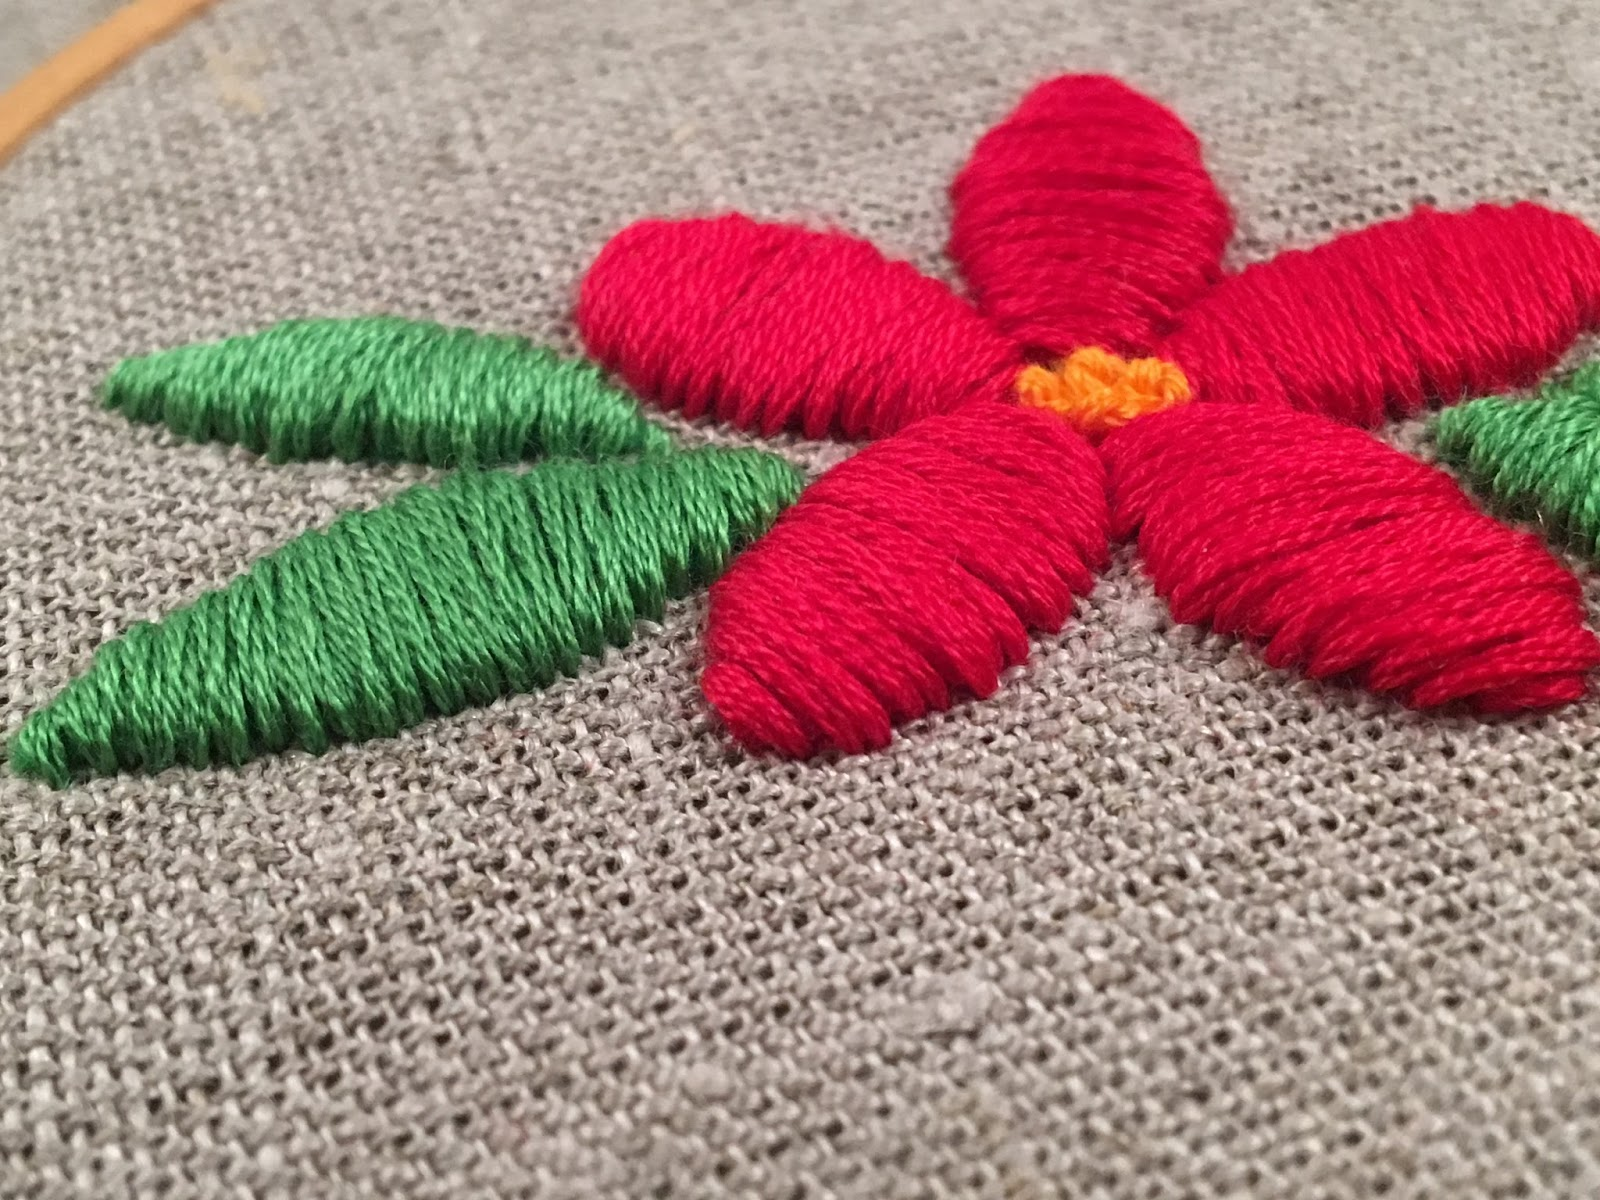 Basic Embroidery Stitches - Satin Stitch